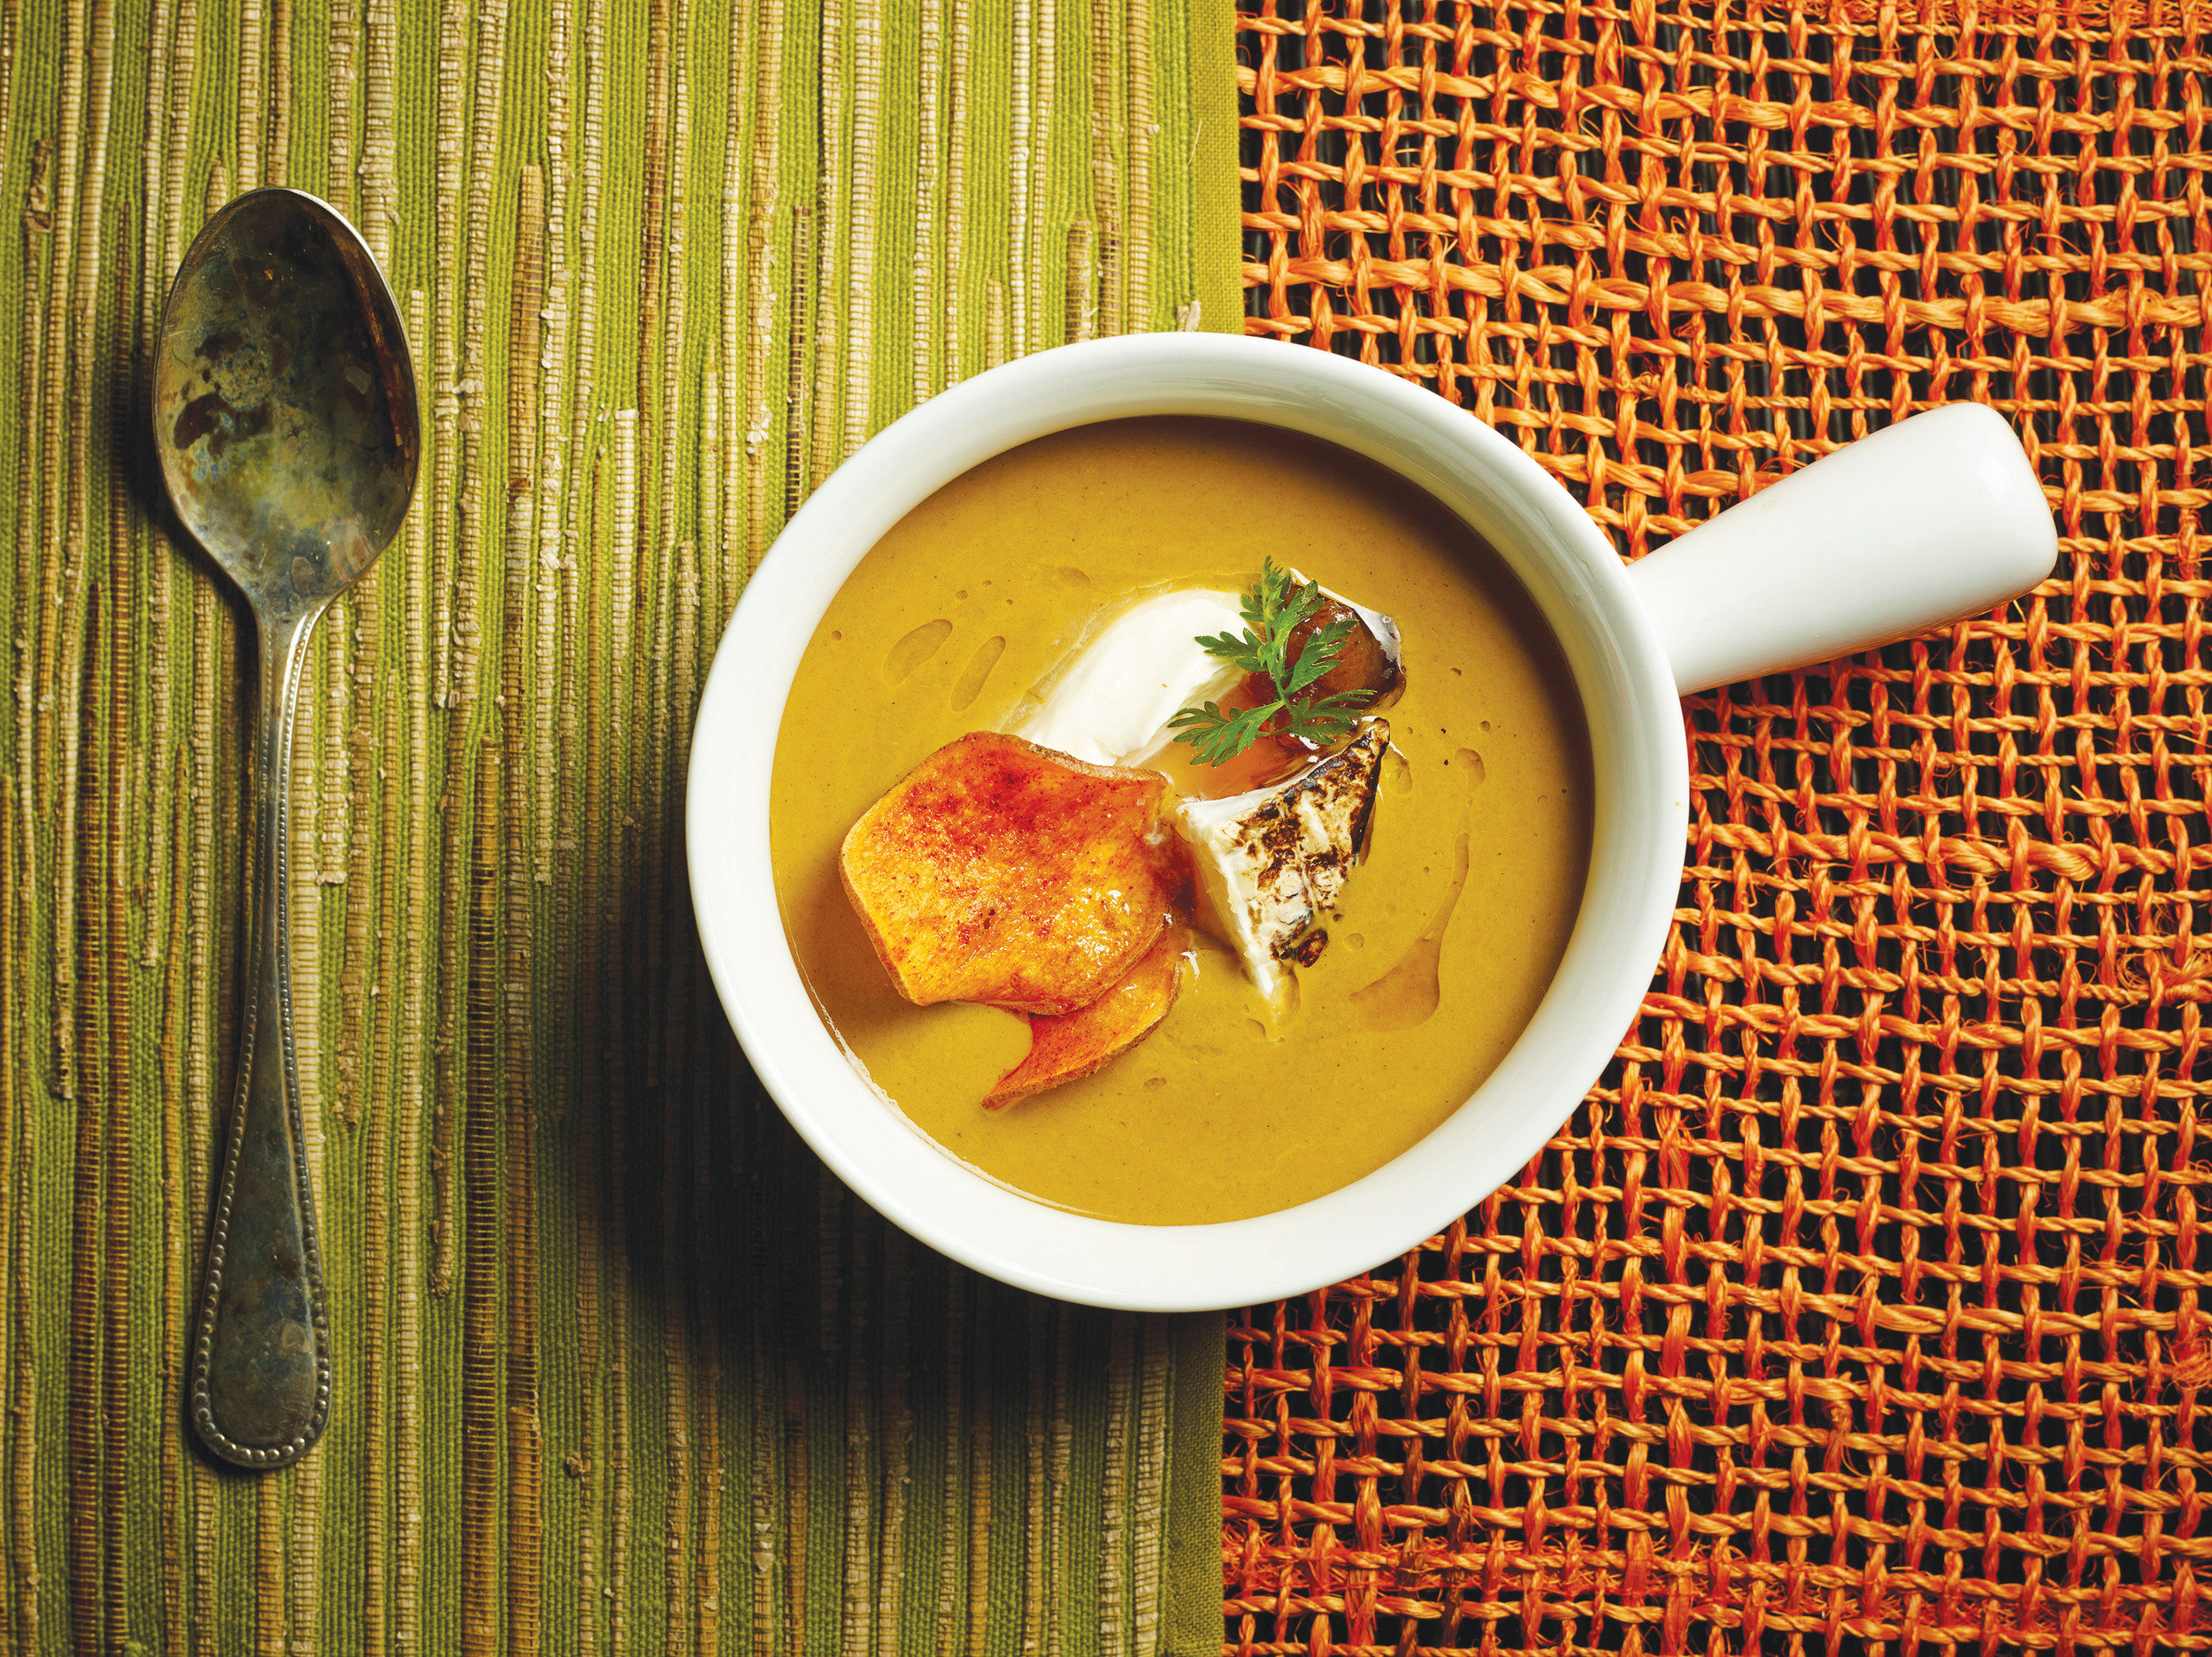 This autumn sweet   potato and mushroom soup dish is from a recipe by the Culinary Institute   of American.